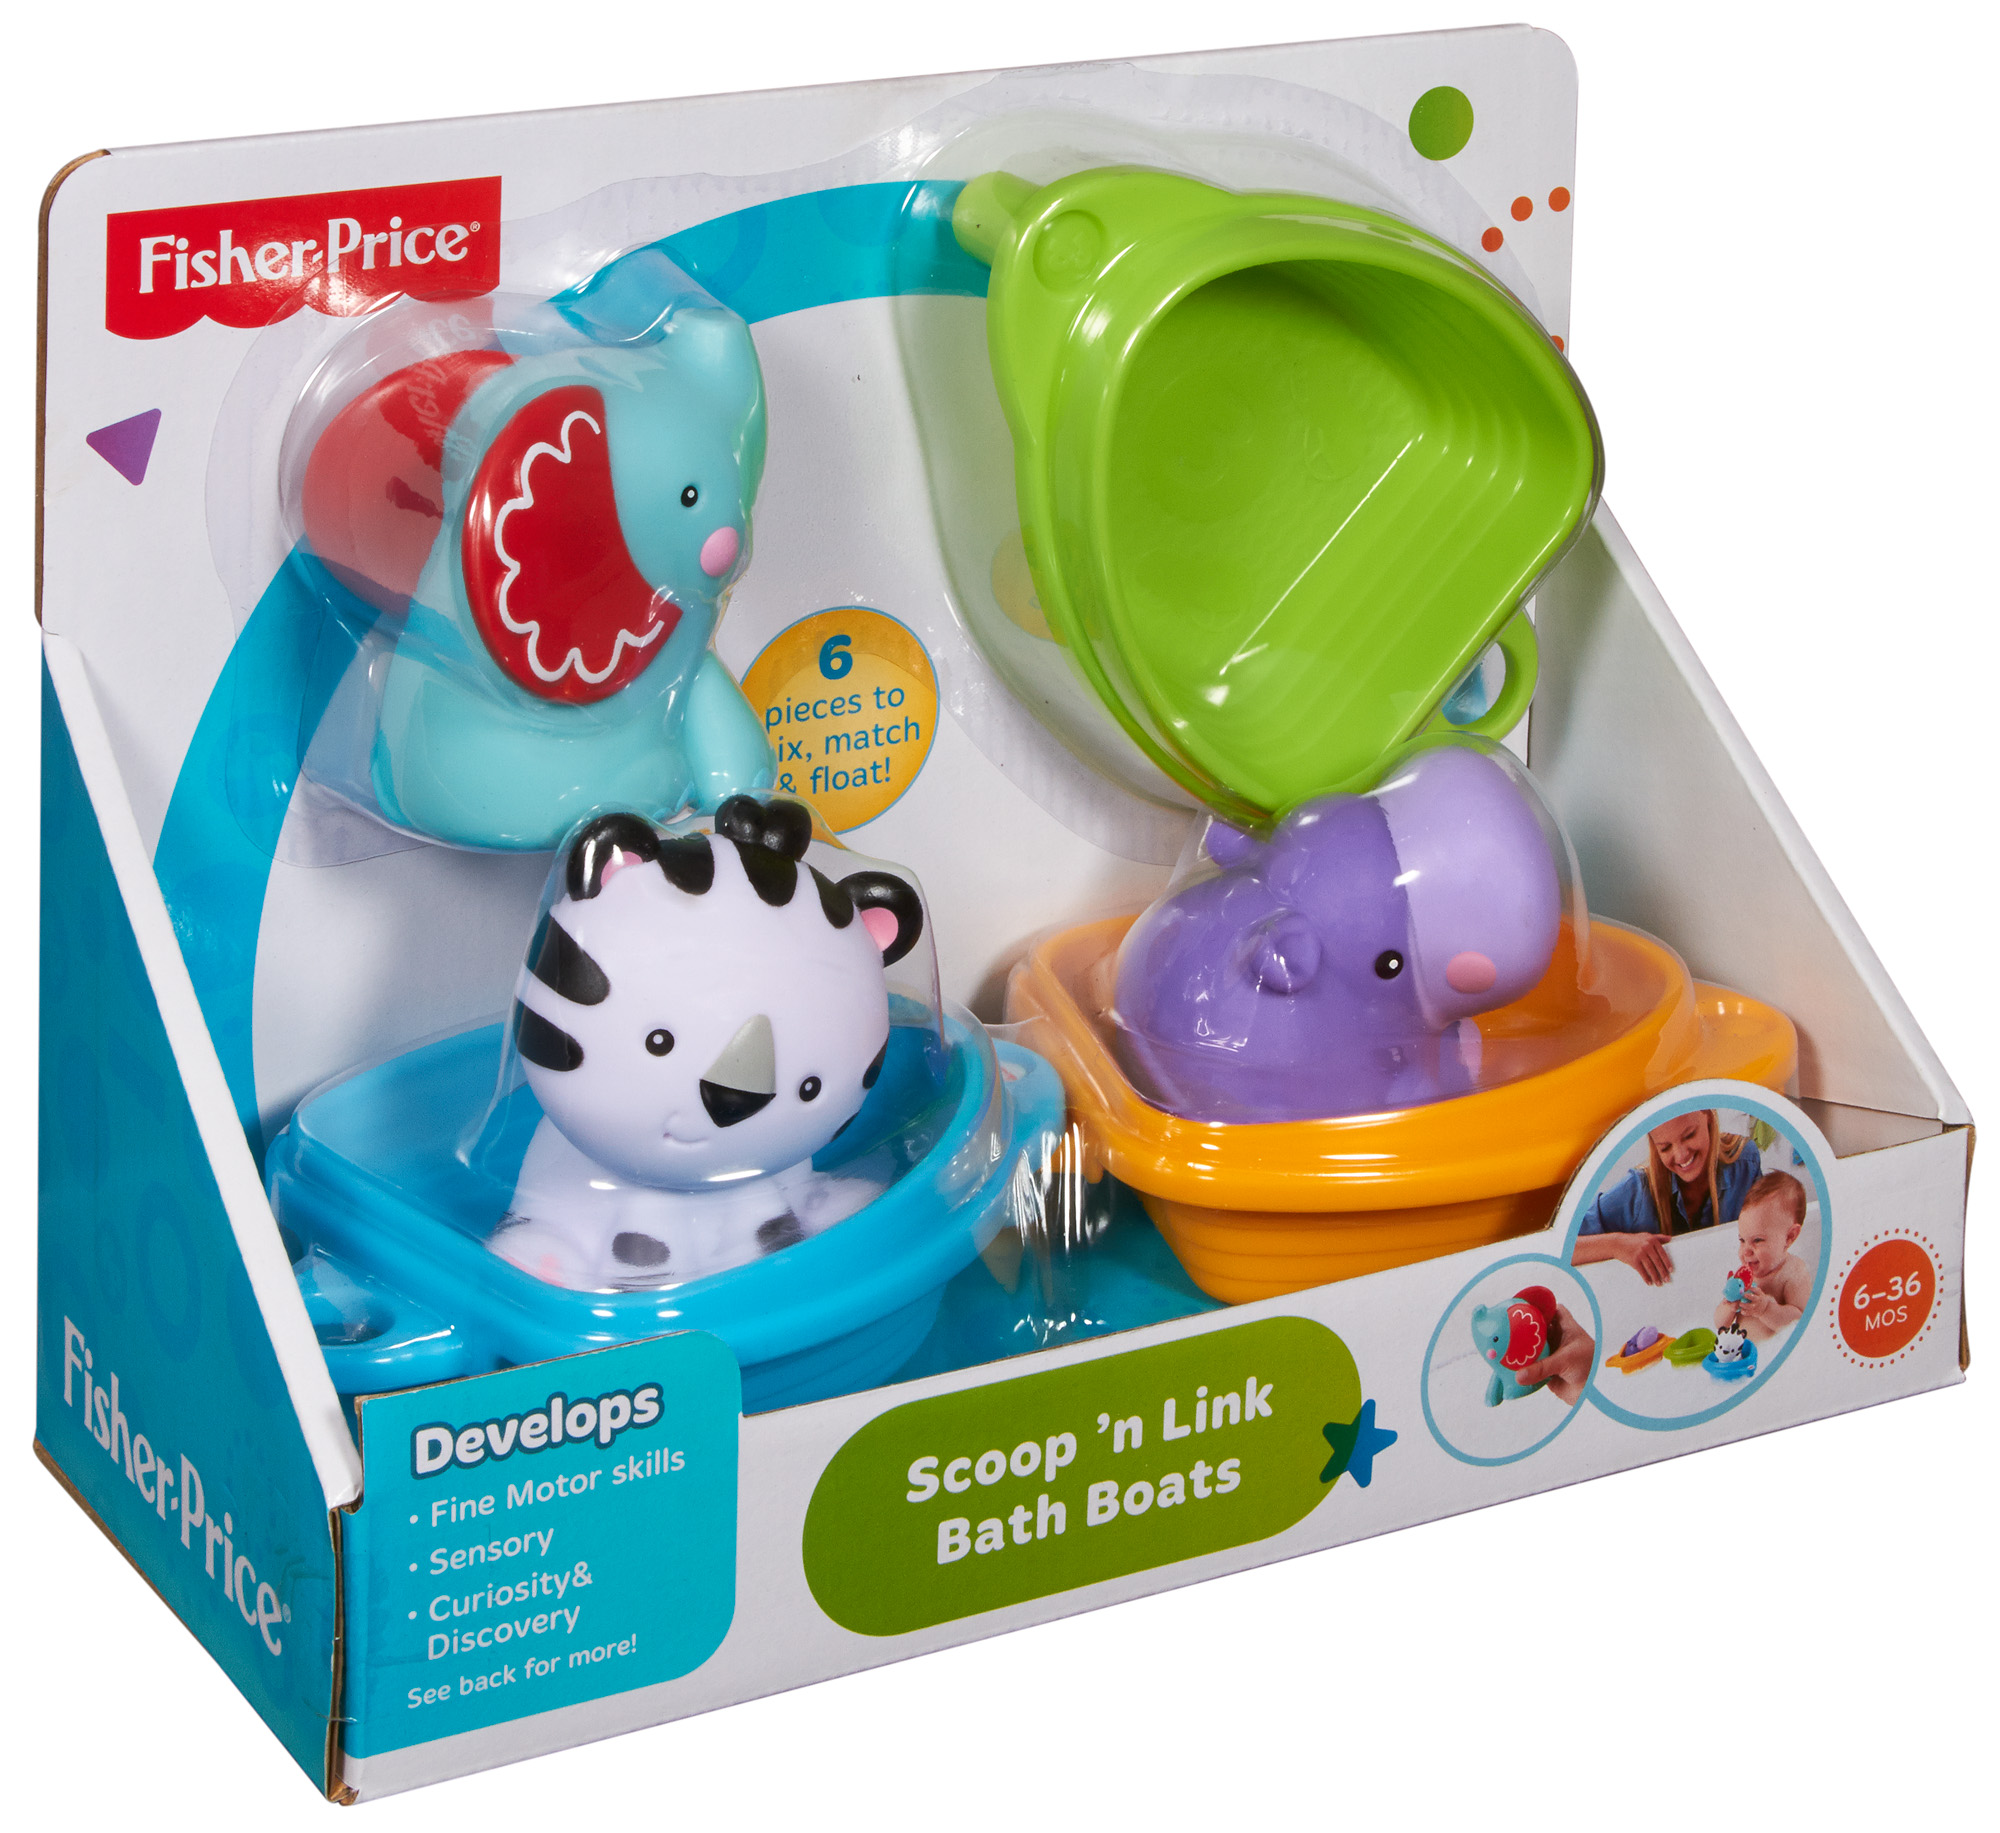 Fisher-Price Scoop ���n Link Bath Boats